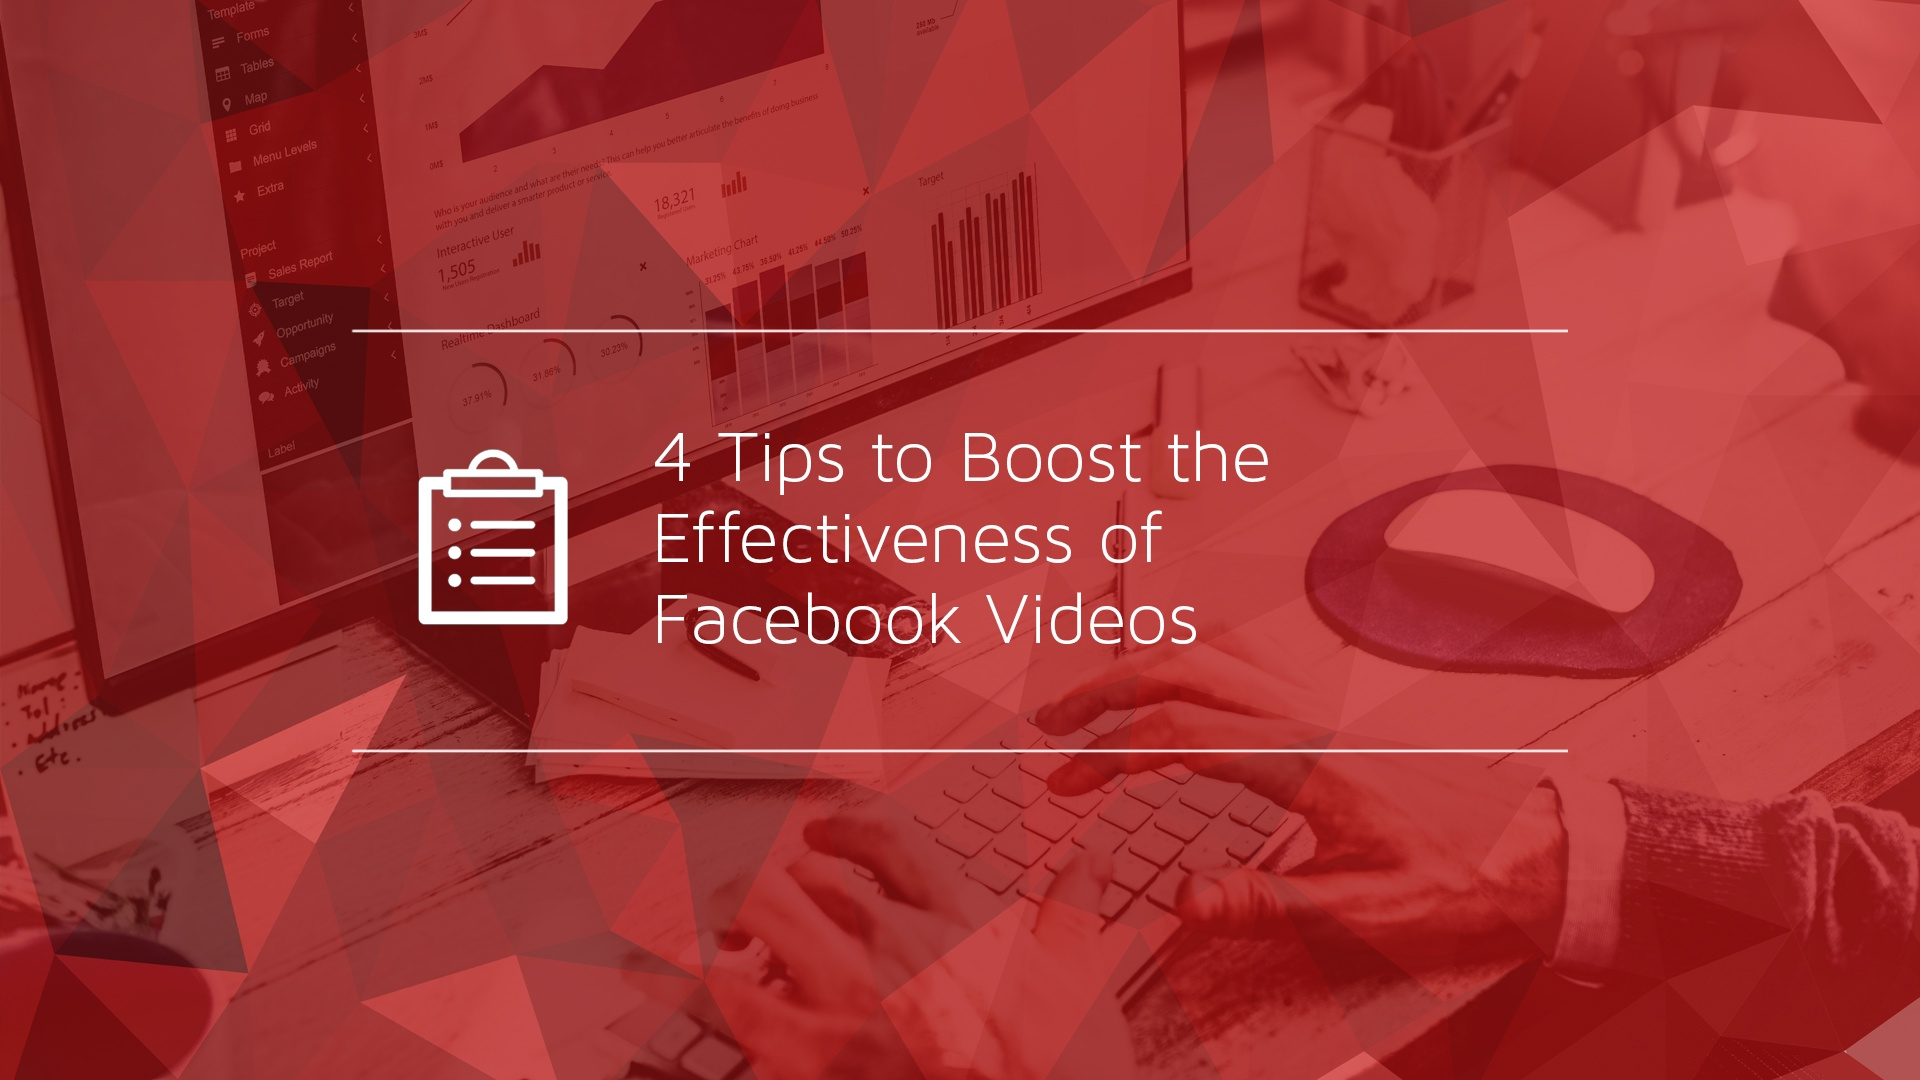 4 Tips to Boost the Effectiveness of Facebook Videos